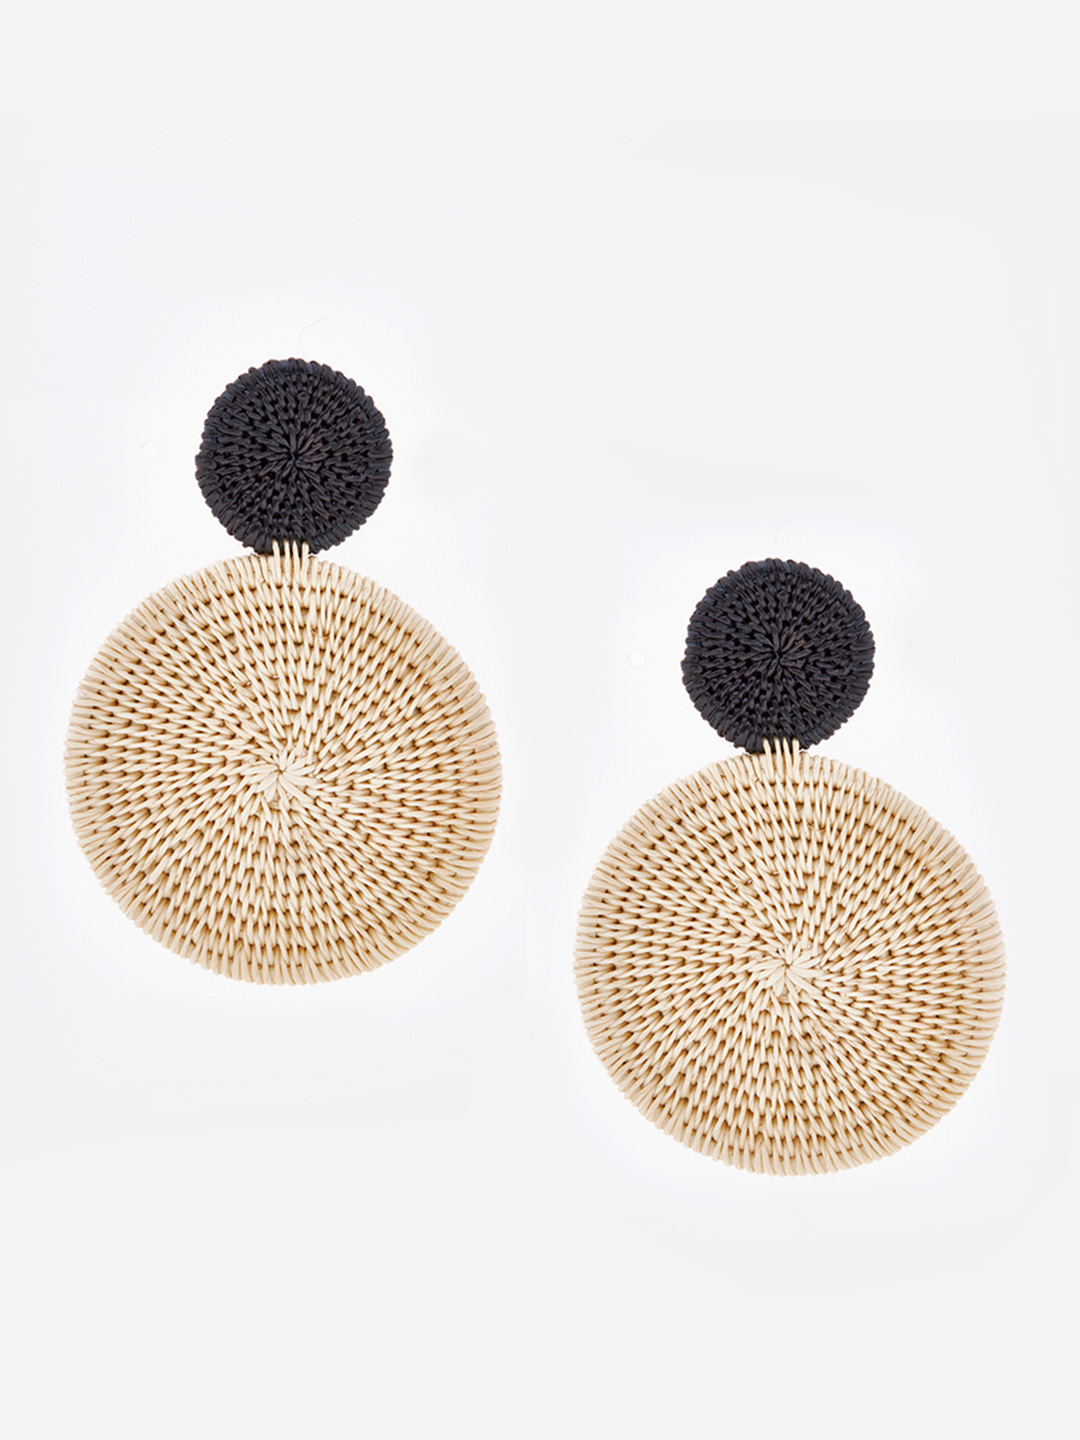 Luciana Black & White Pierced Earrings - Black